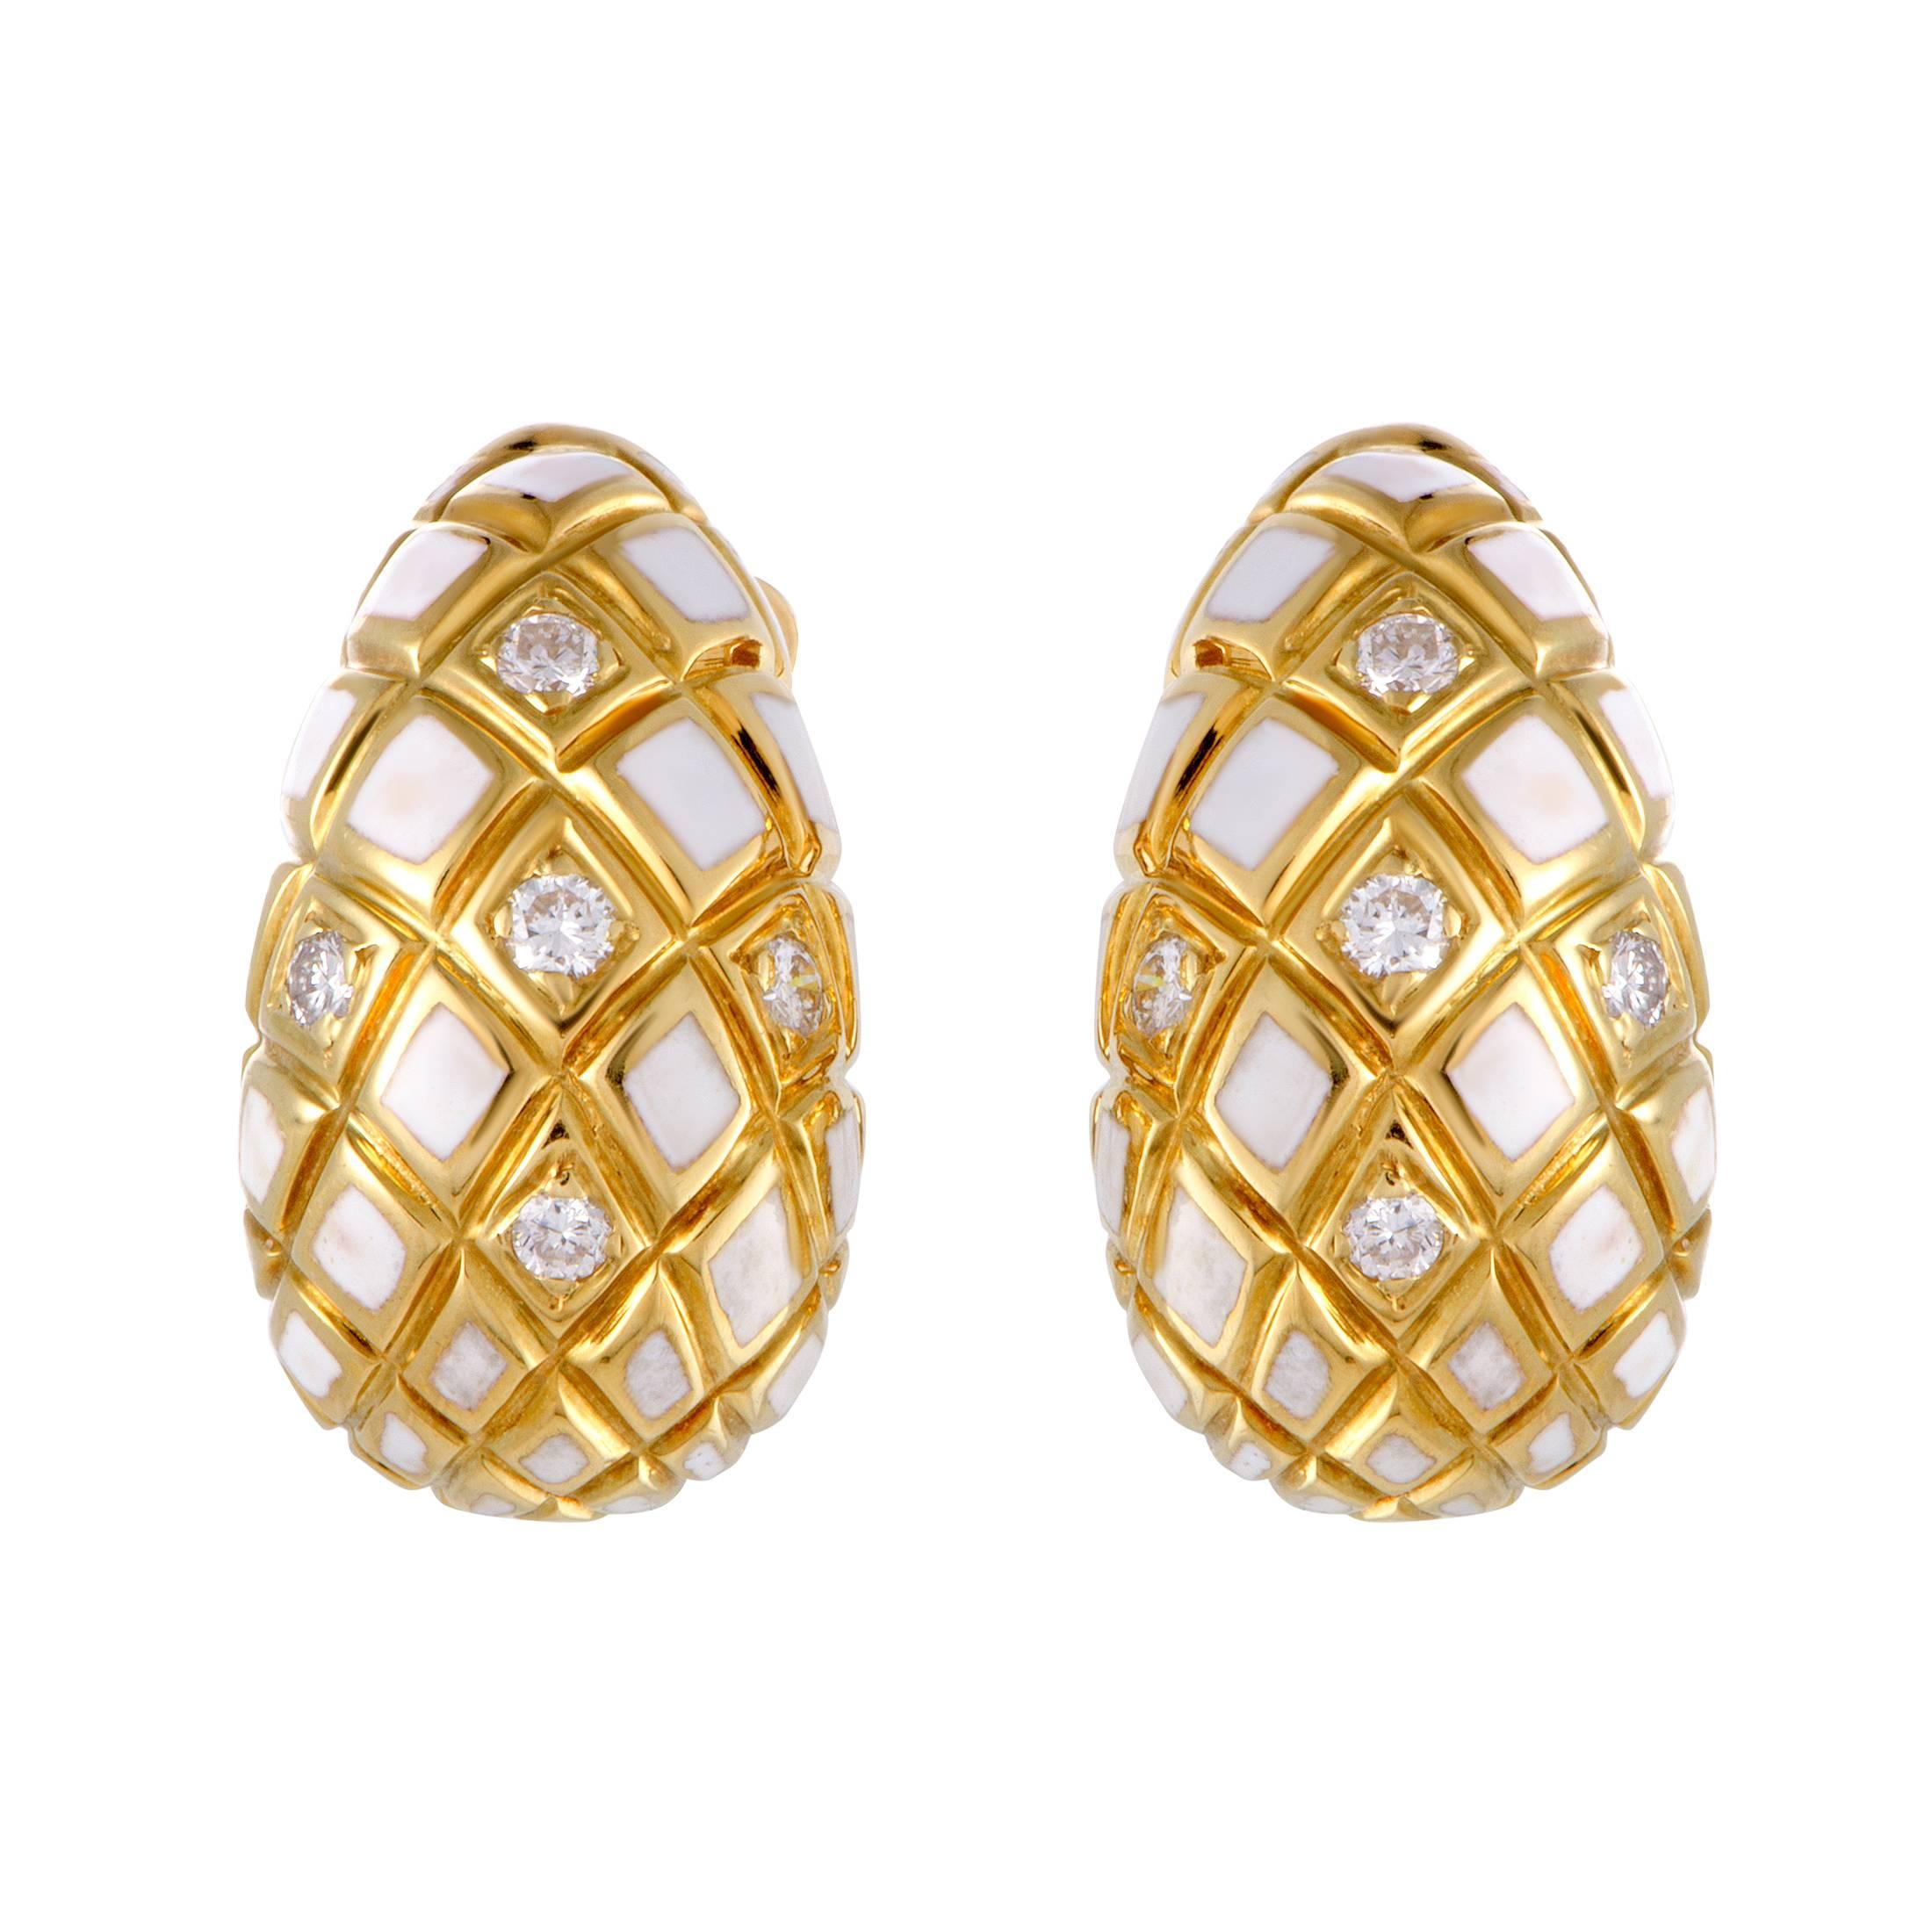 webb david dome stud earrings